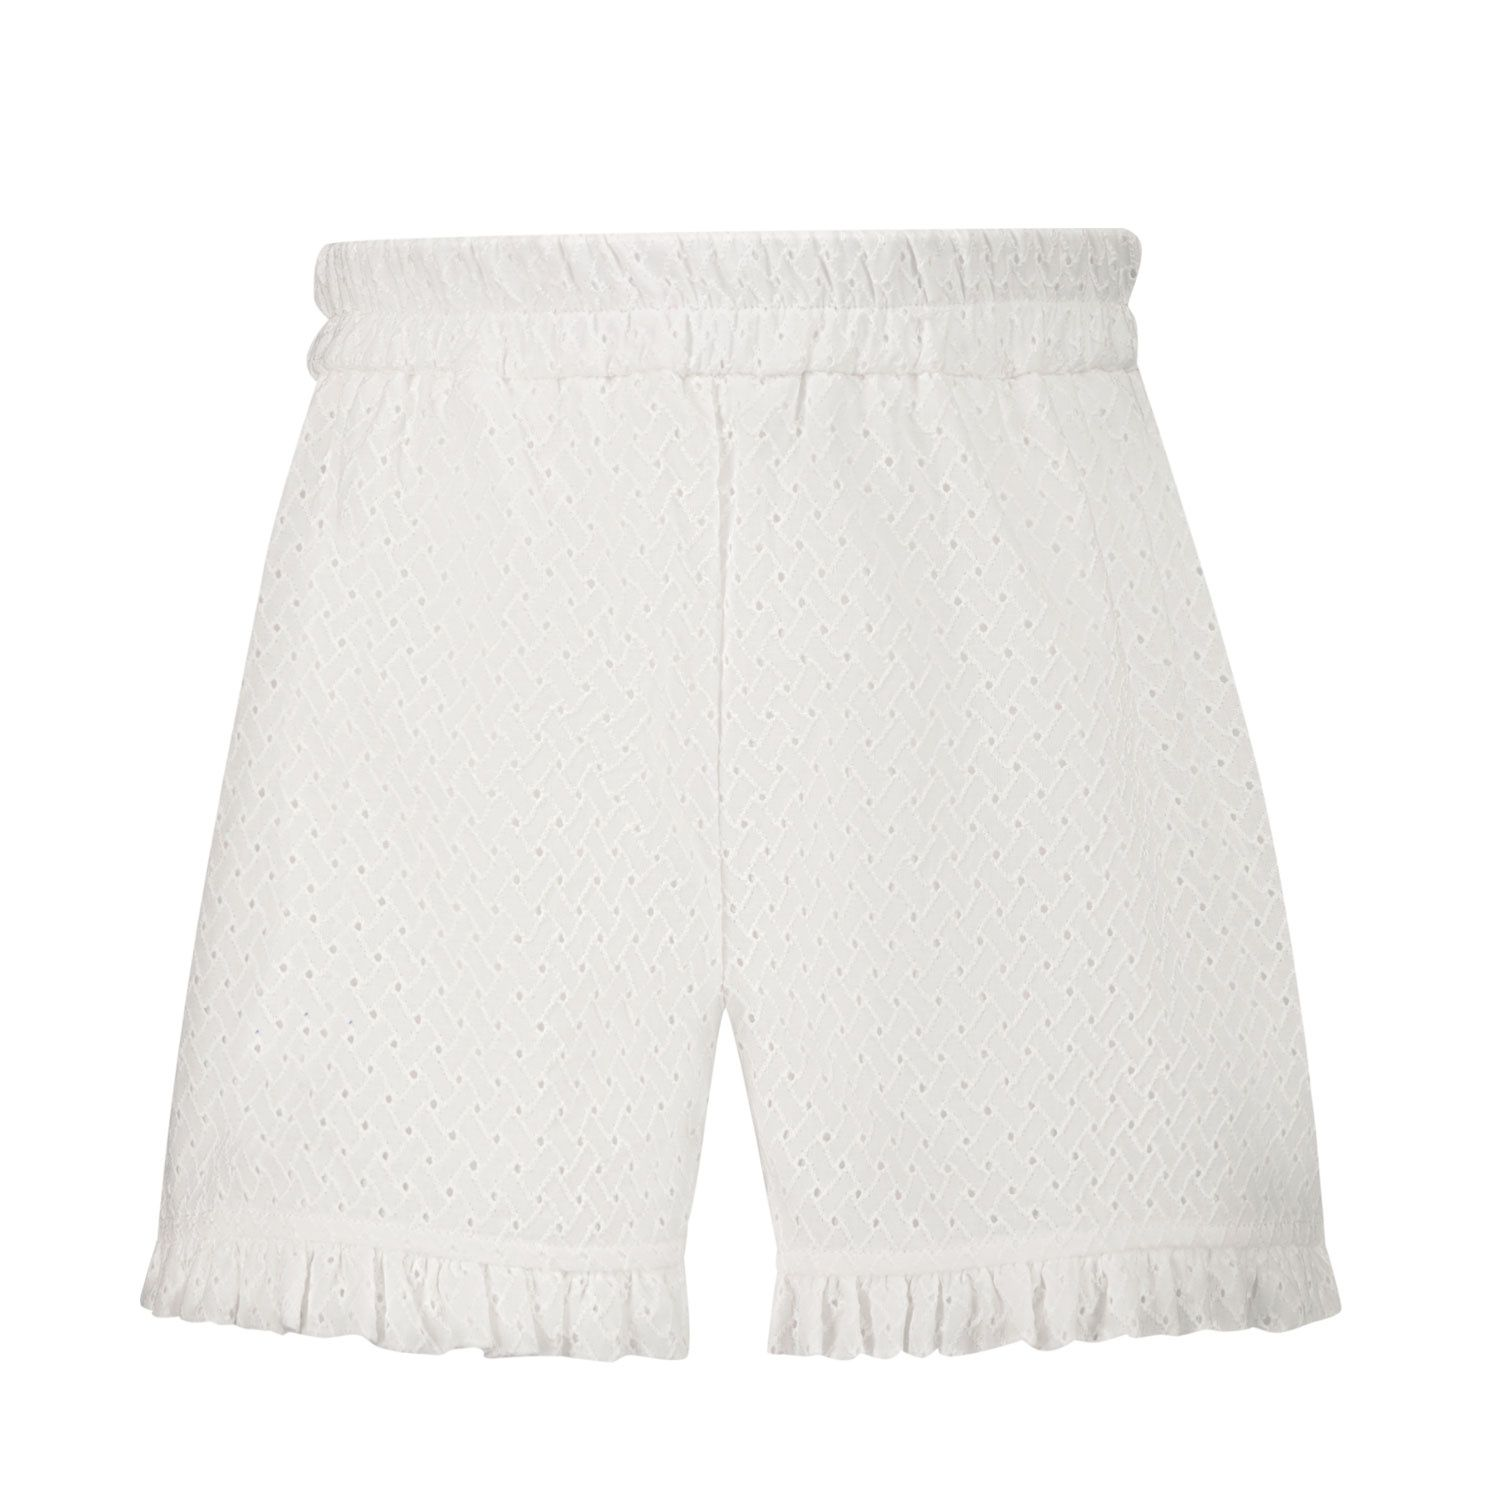 Picture of MonnaLisa 377409 baby shorts white